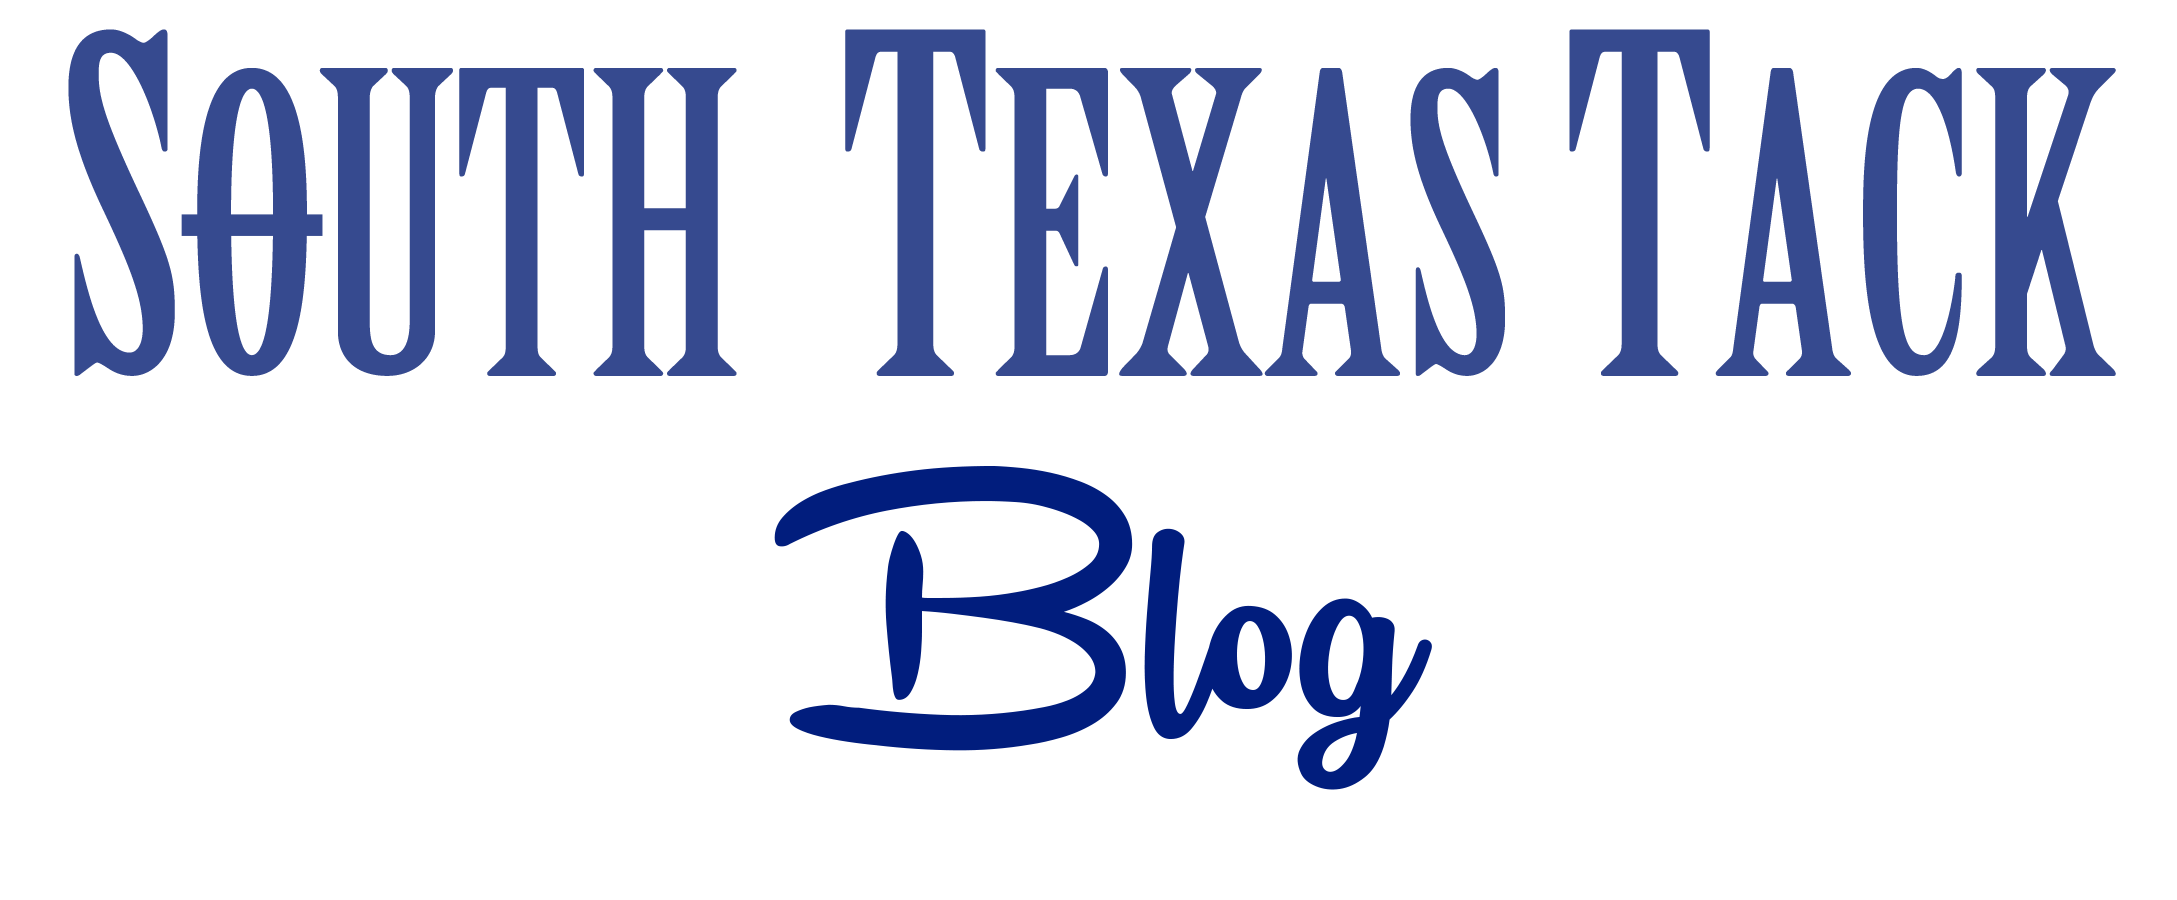 1d9615825 Blog | South Texas Tack